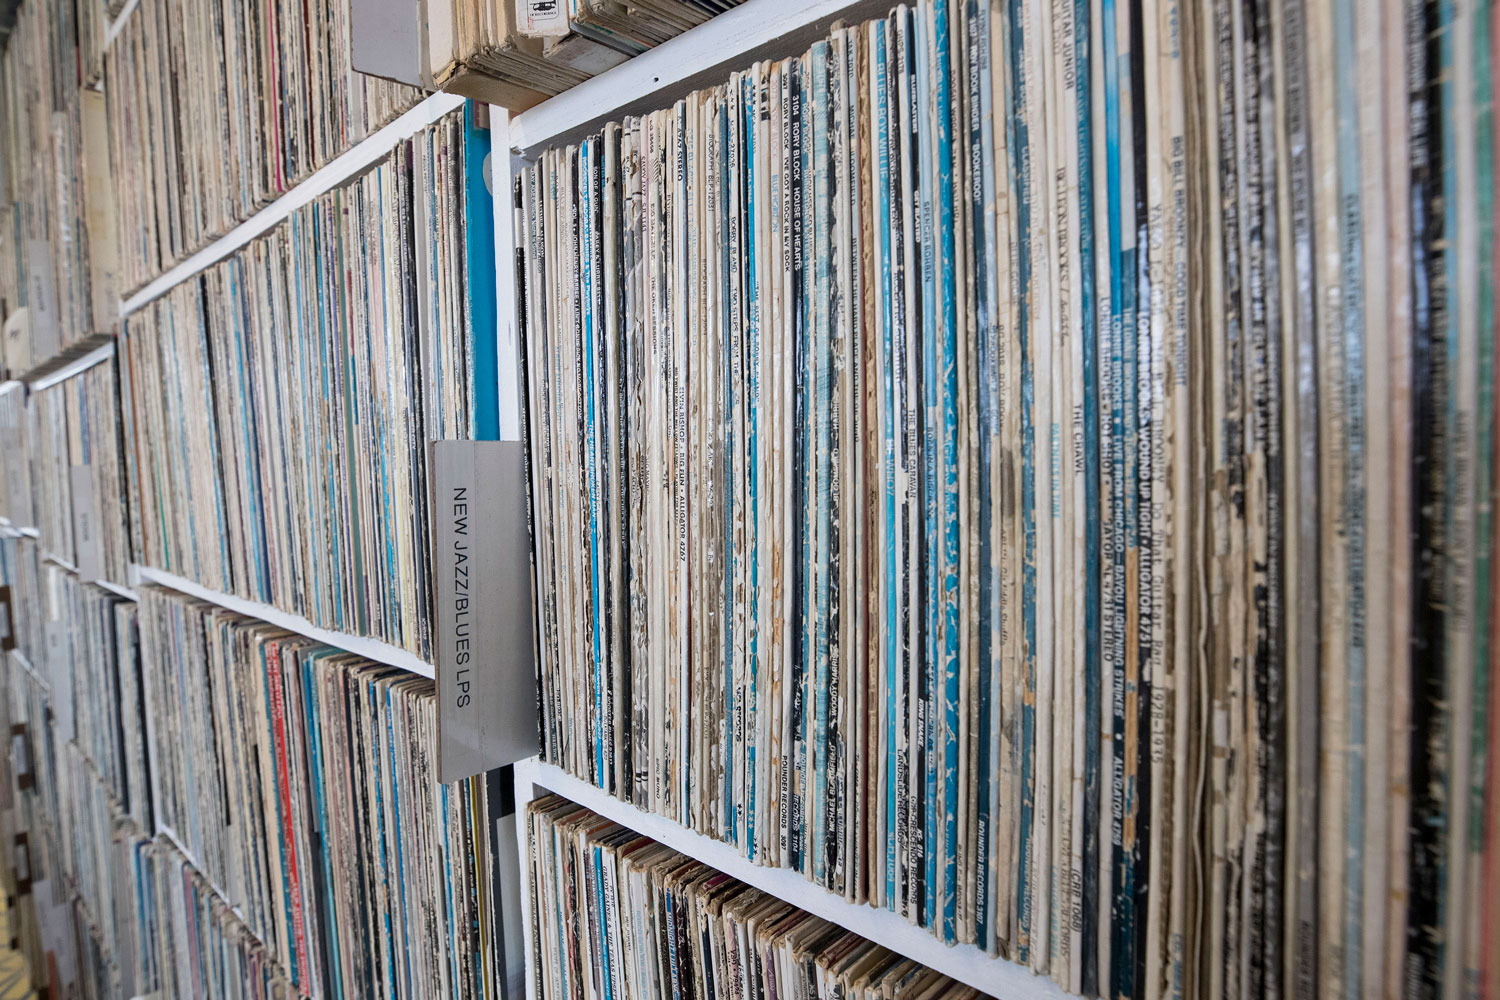 The station embraces all sorts of technology, including more than 40,000 vinyl records.